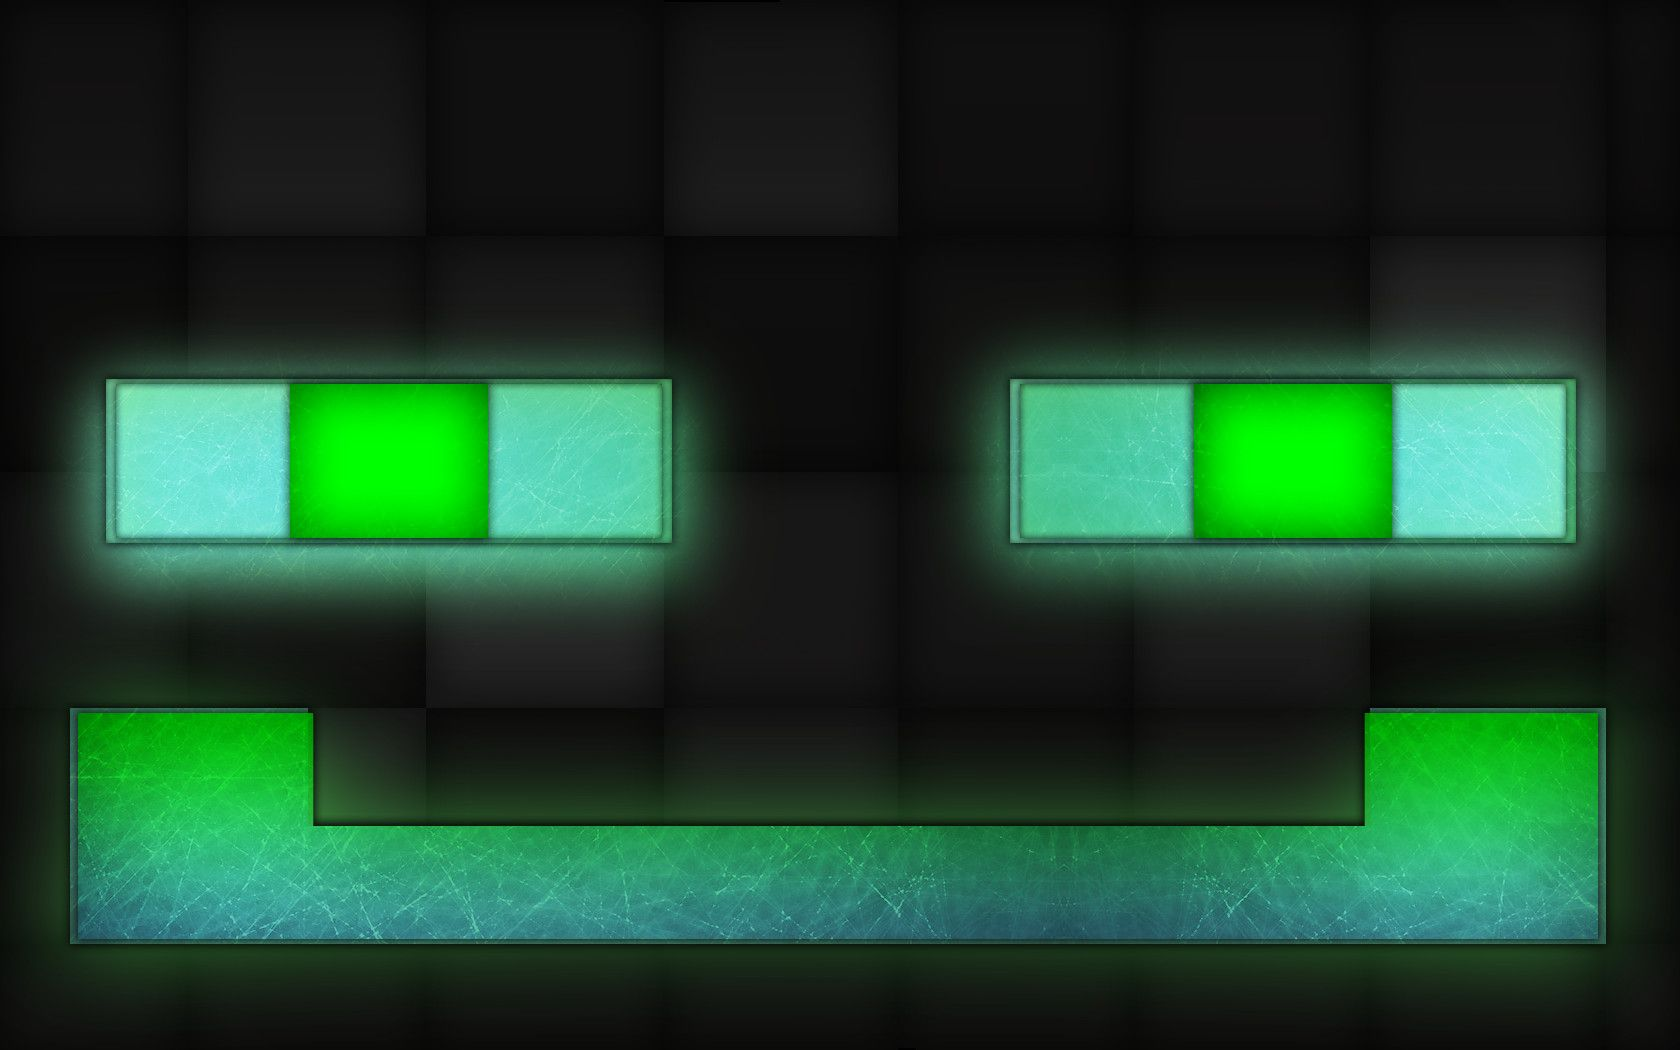 Awesome Minecraft Wallpaper Enderman 12373 Hd Wallpapers With